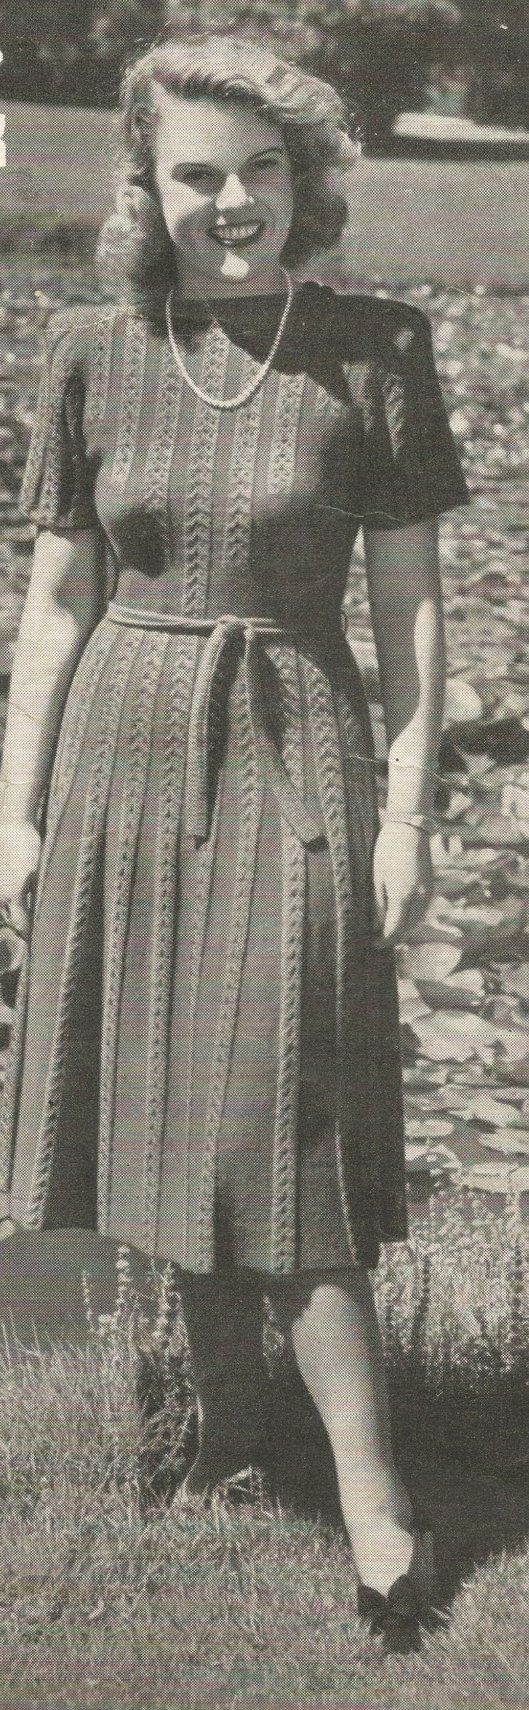 Ladies 1940s Knitted Dress with Tie Belt by NYNKnittingPatterns